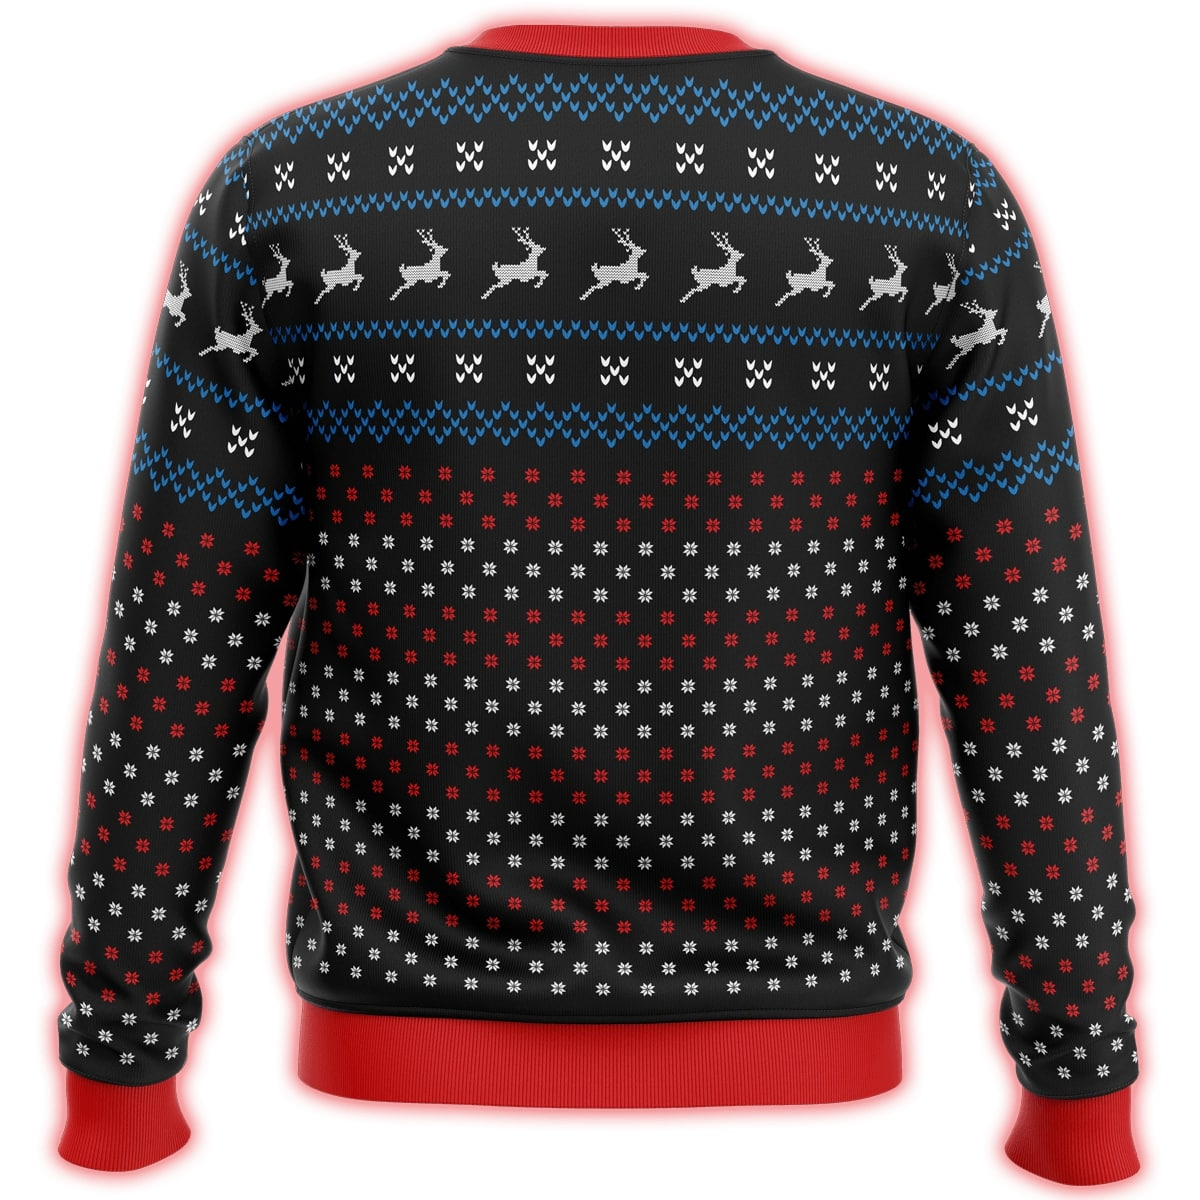 patriotic eagle all over print ugly christmas sweater 5